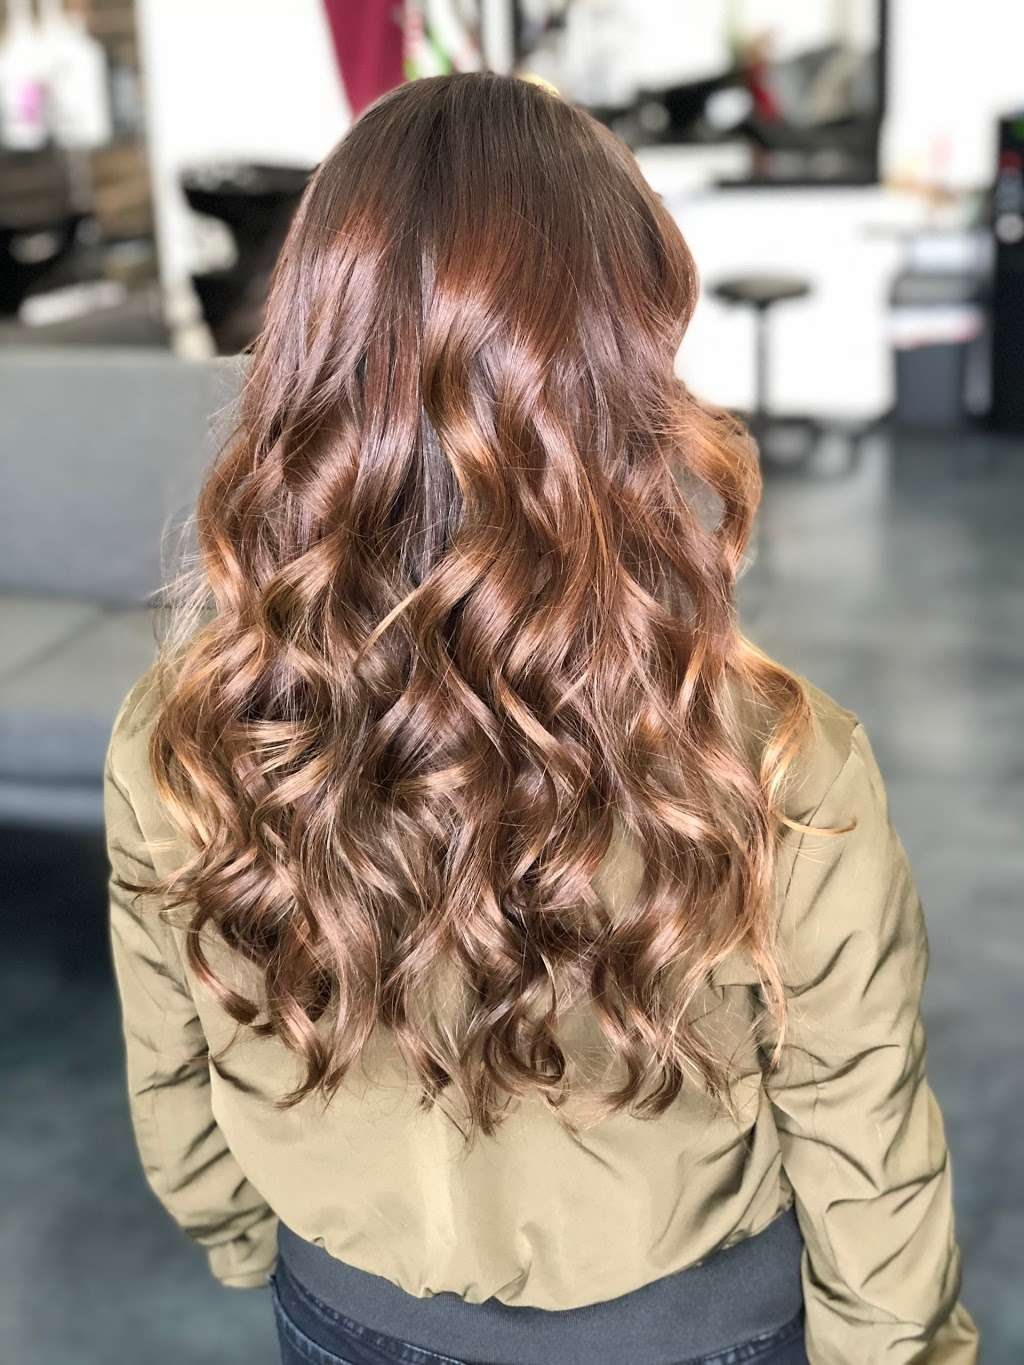 Studio G beauty salon & Barber shop - hair care  | Photo 4 of 10 | Address: 941 N Michillinda Ave, Pasadena, CA 91107, USA | Phone: (626) 510-6366